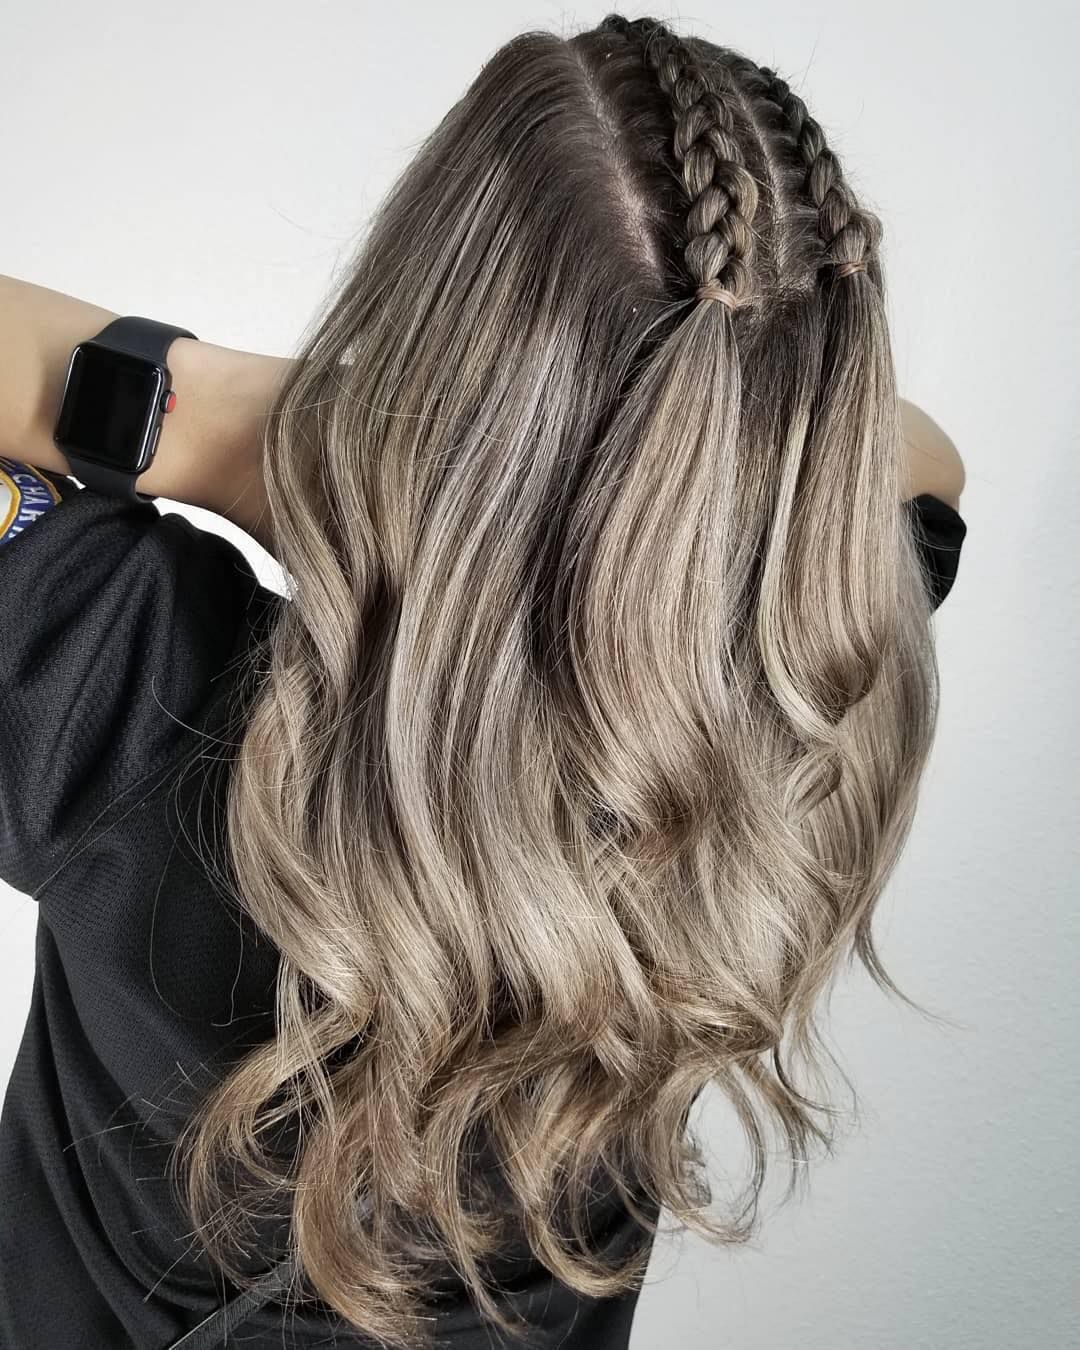 Everything Balayage On Instagram Top Braided Beauty By Beautybyshorty Balayagist Braids Braids For Long Hair Medium Hair Styles Long Hair Styles